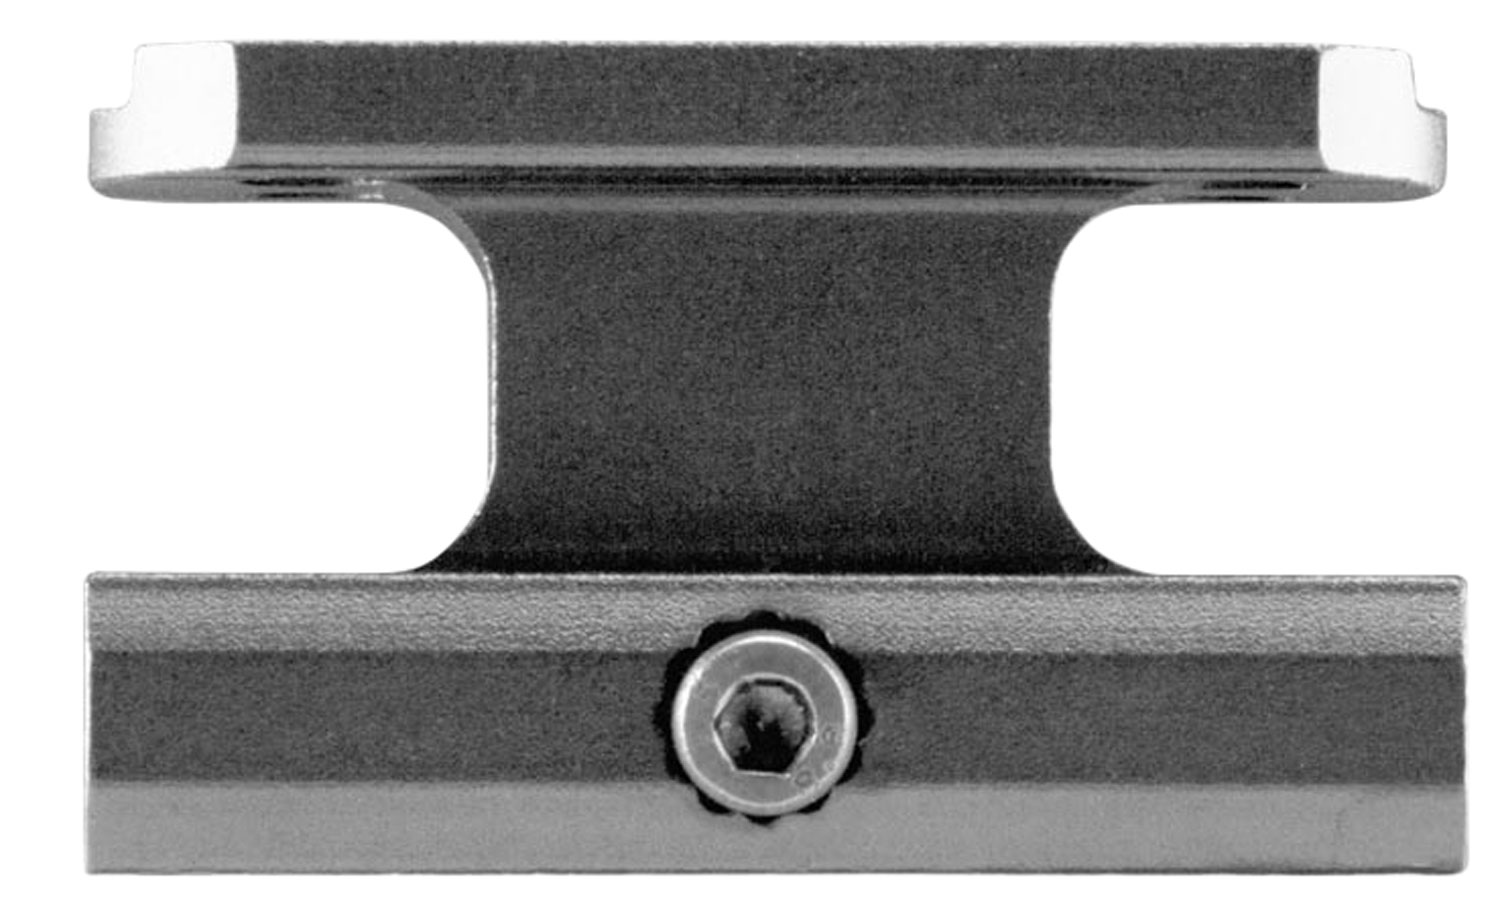 Aim Sports  T1 Mount Absolute Co-Witness Black Anodized Aluminum